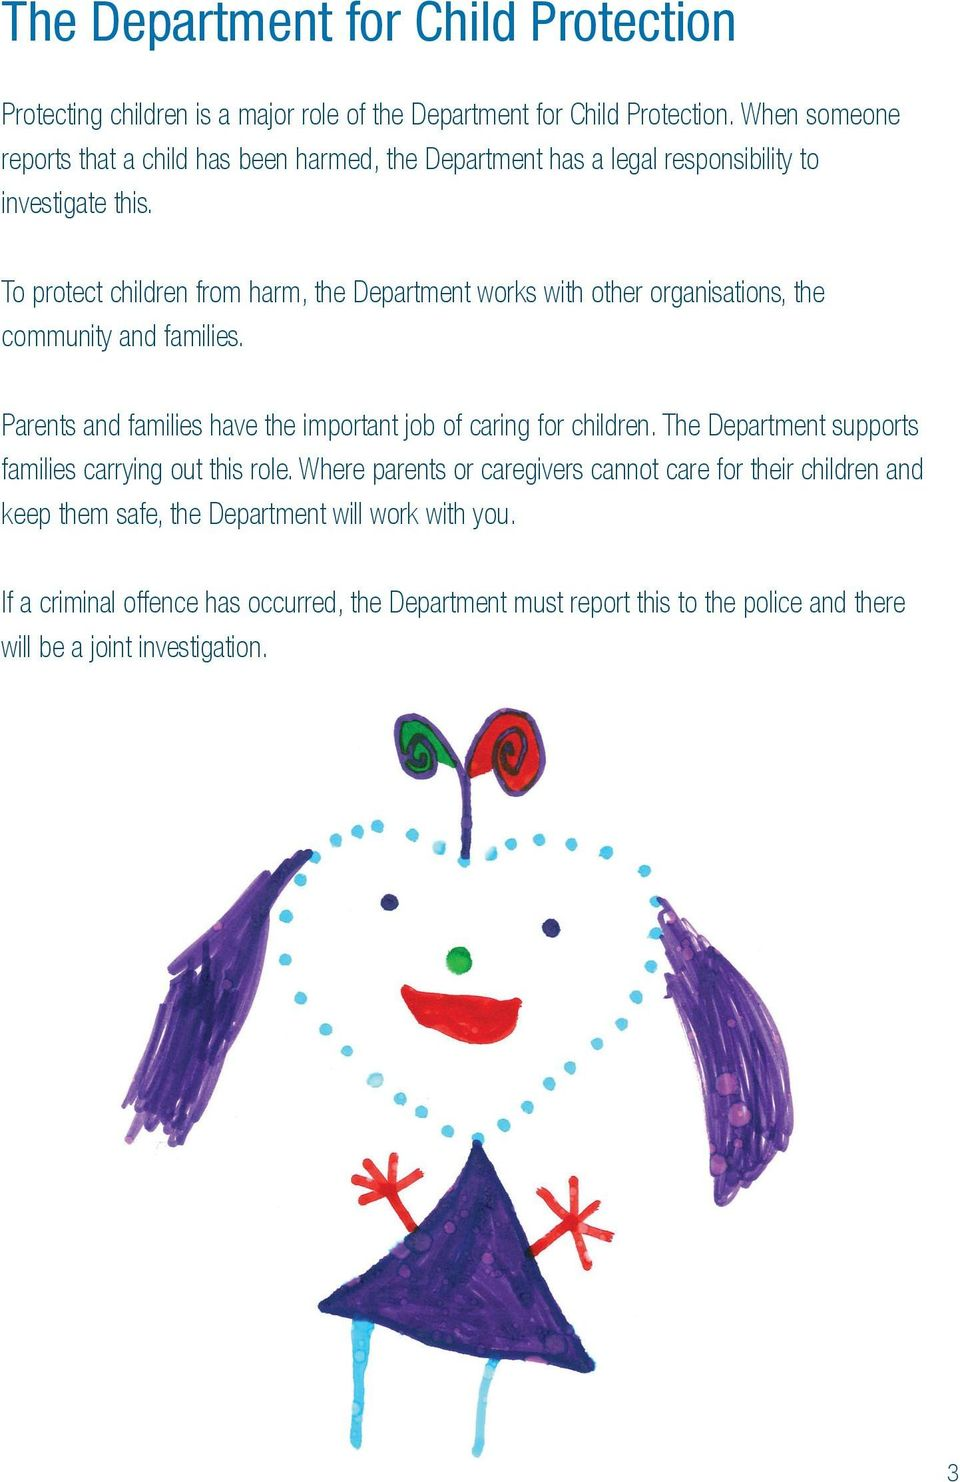 To protect children from harm, the Department works with other organisations, the community and families. Parents and families have the important job of caring for children.